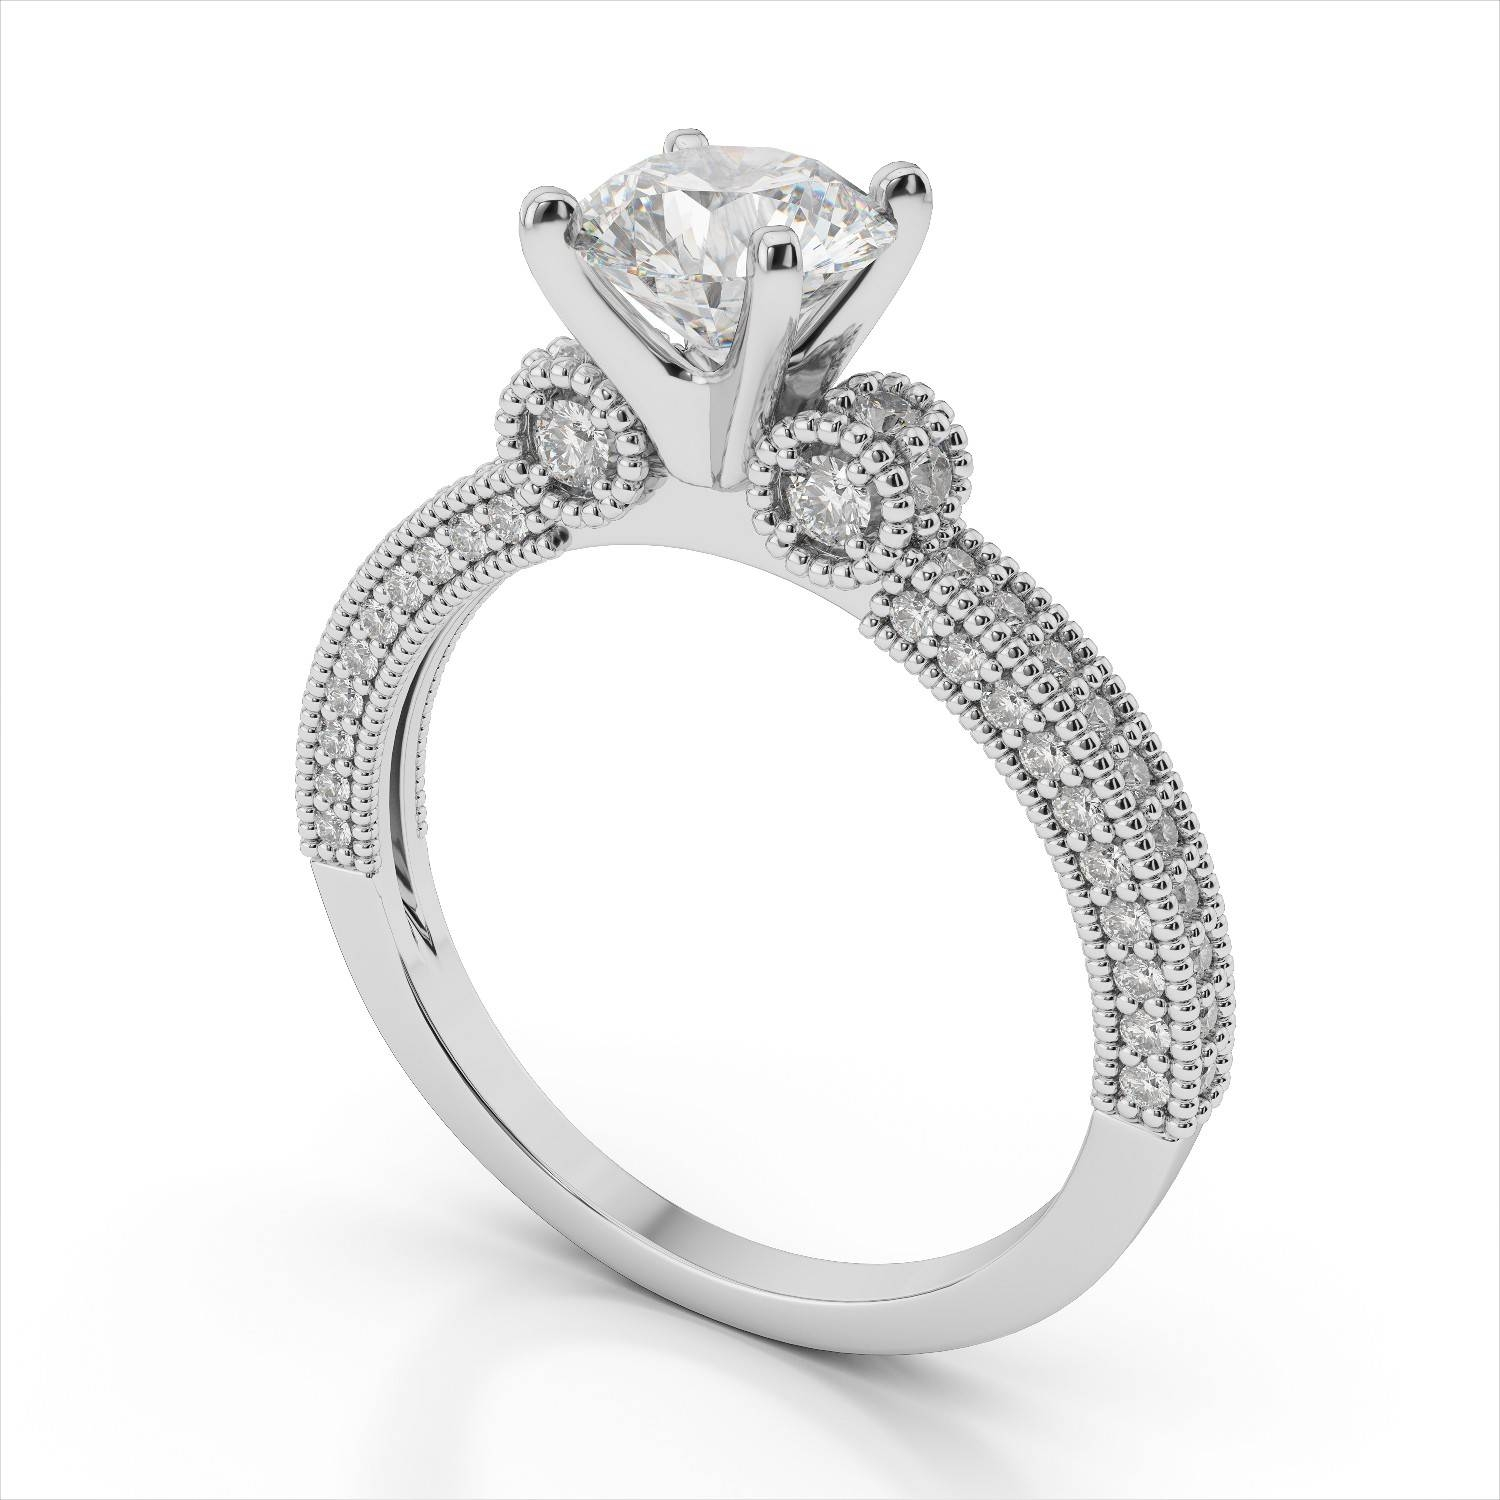 Antique Platinum Engagement Ring Settings | Wedding, Promise Regarding Platinum Wedding Rings Settings (View 5 of 15)